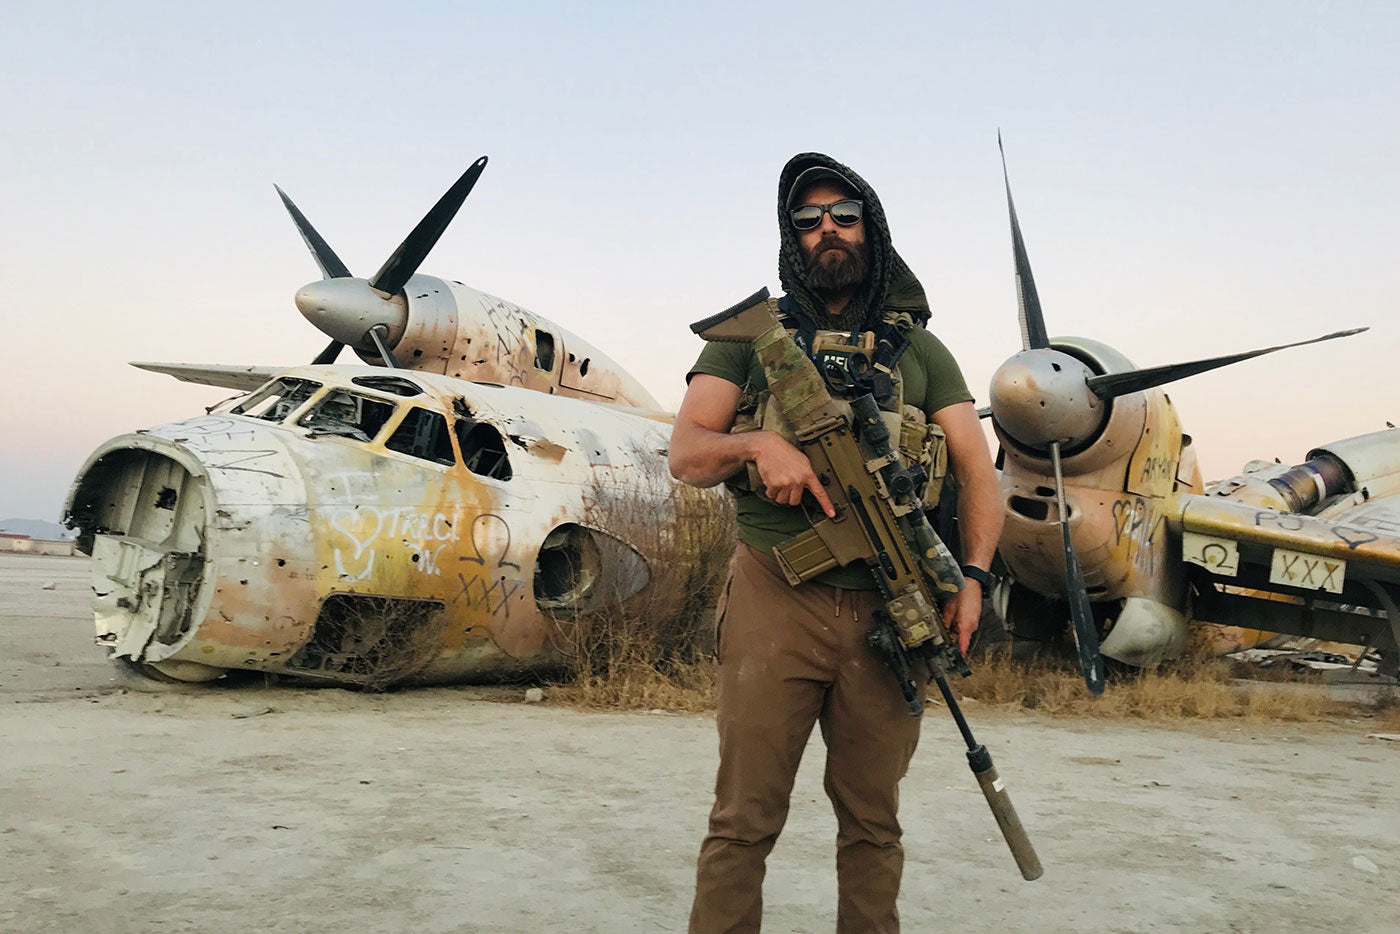 walter sky WS-T01 and WS-B02 field testing with solidier porter in the desert